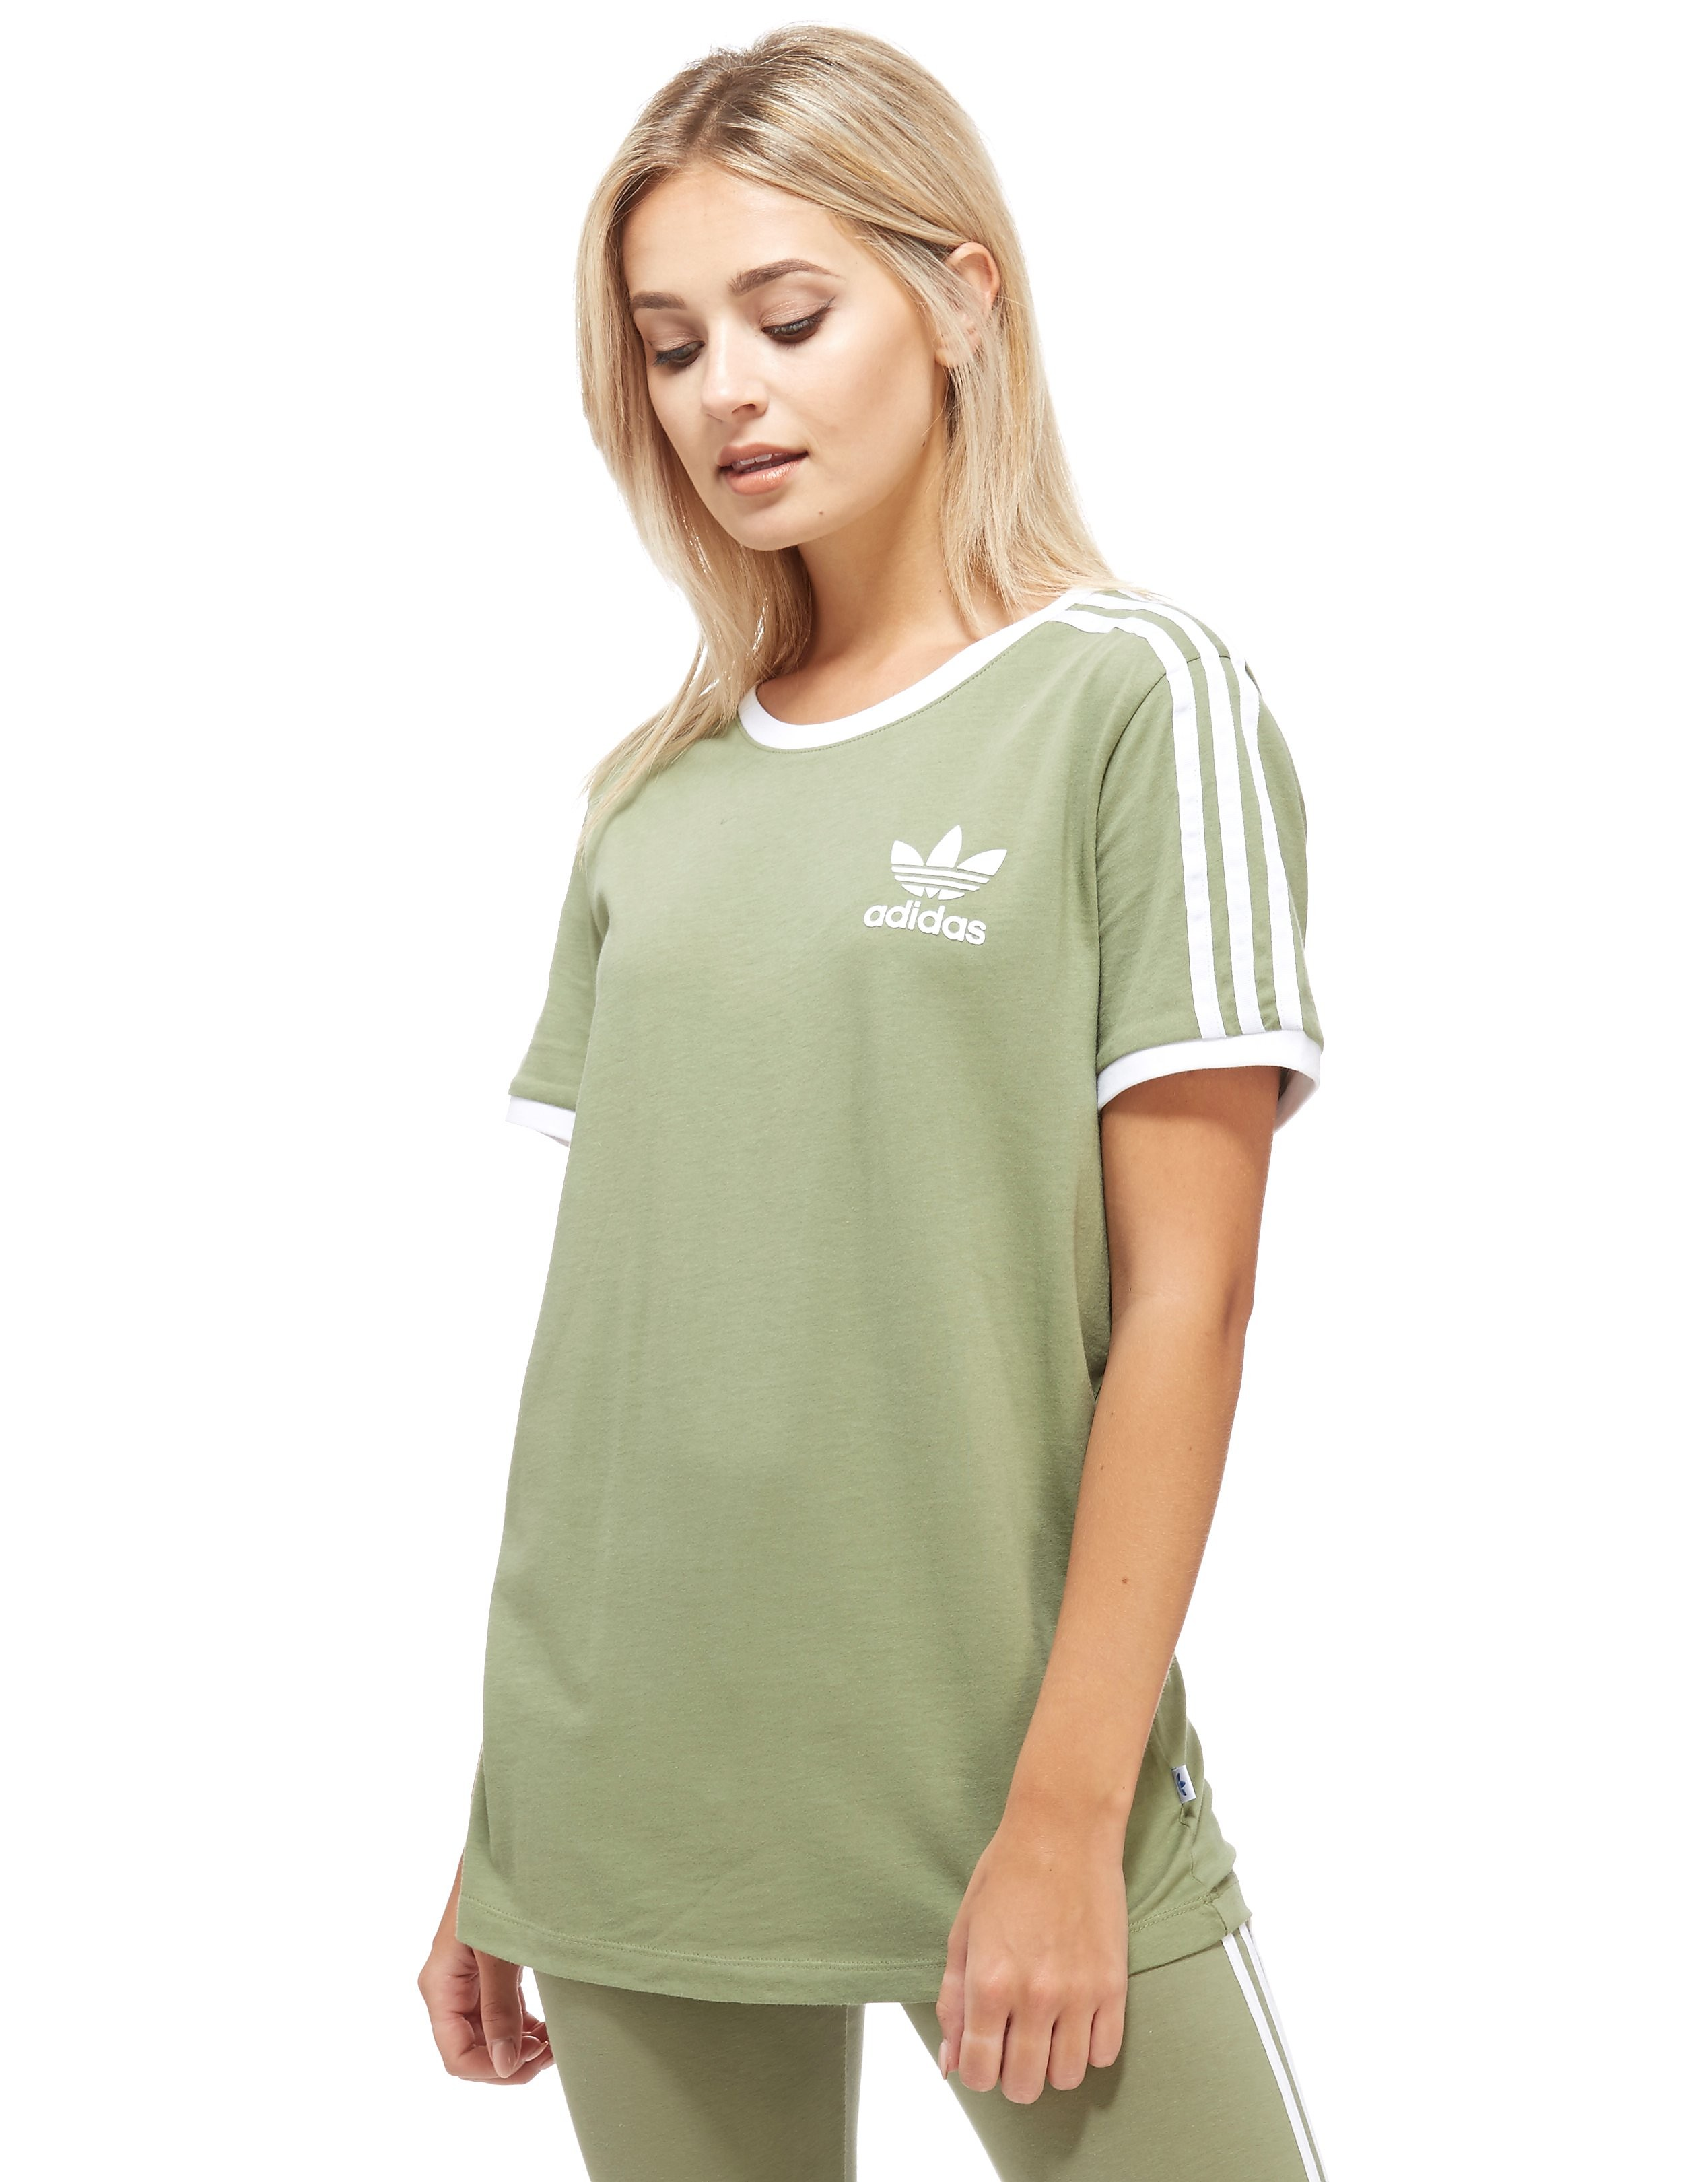 adidas Originals California T-Shirt